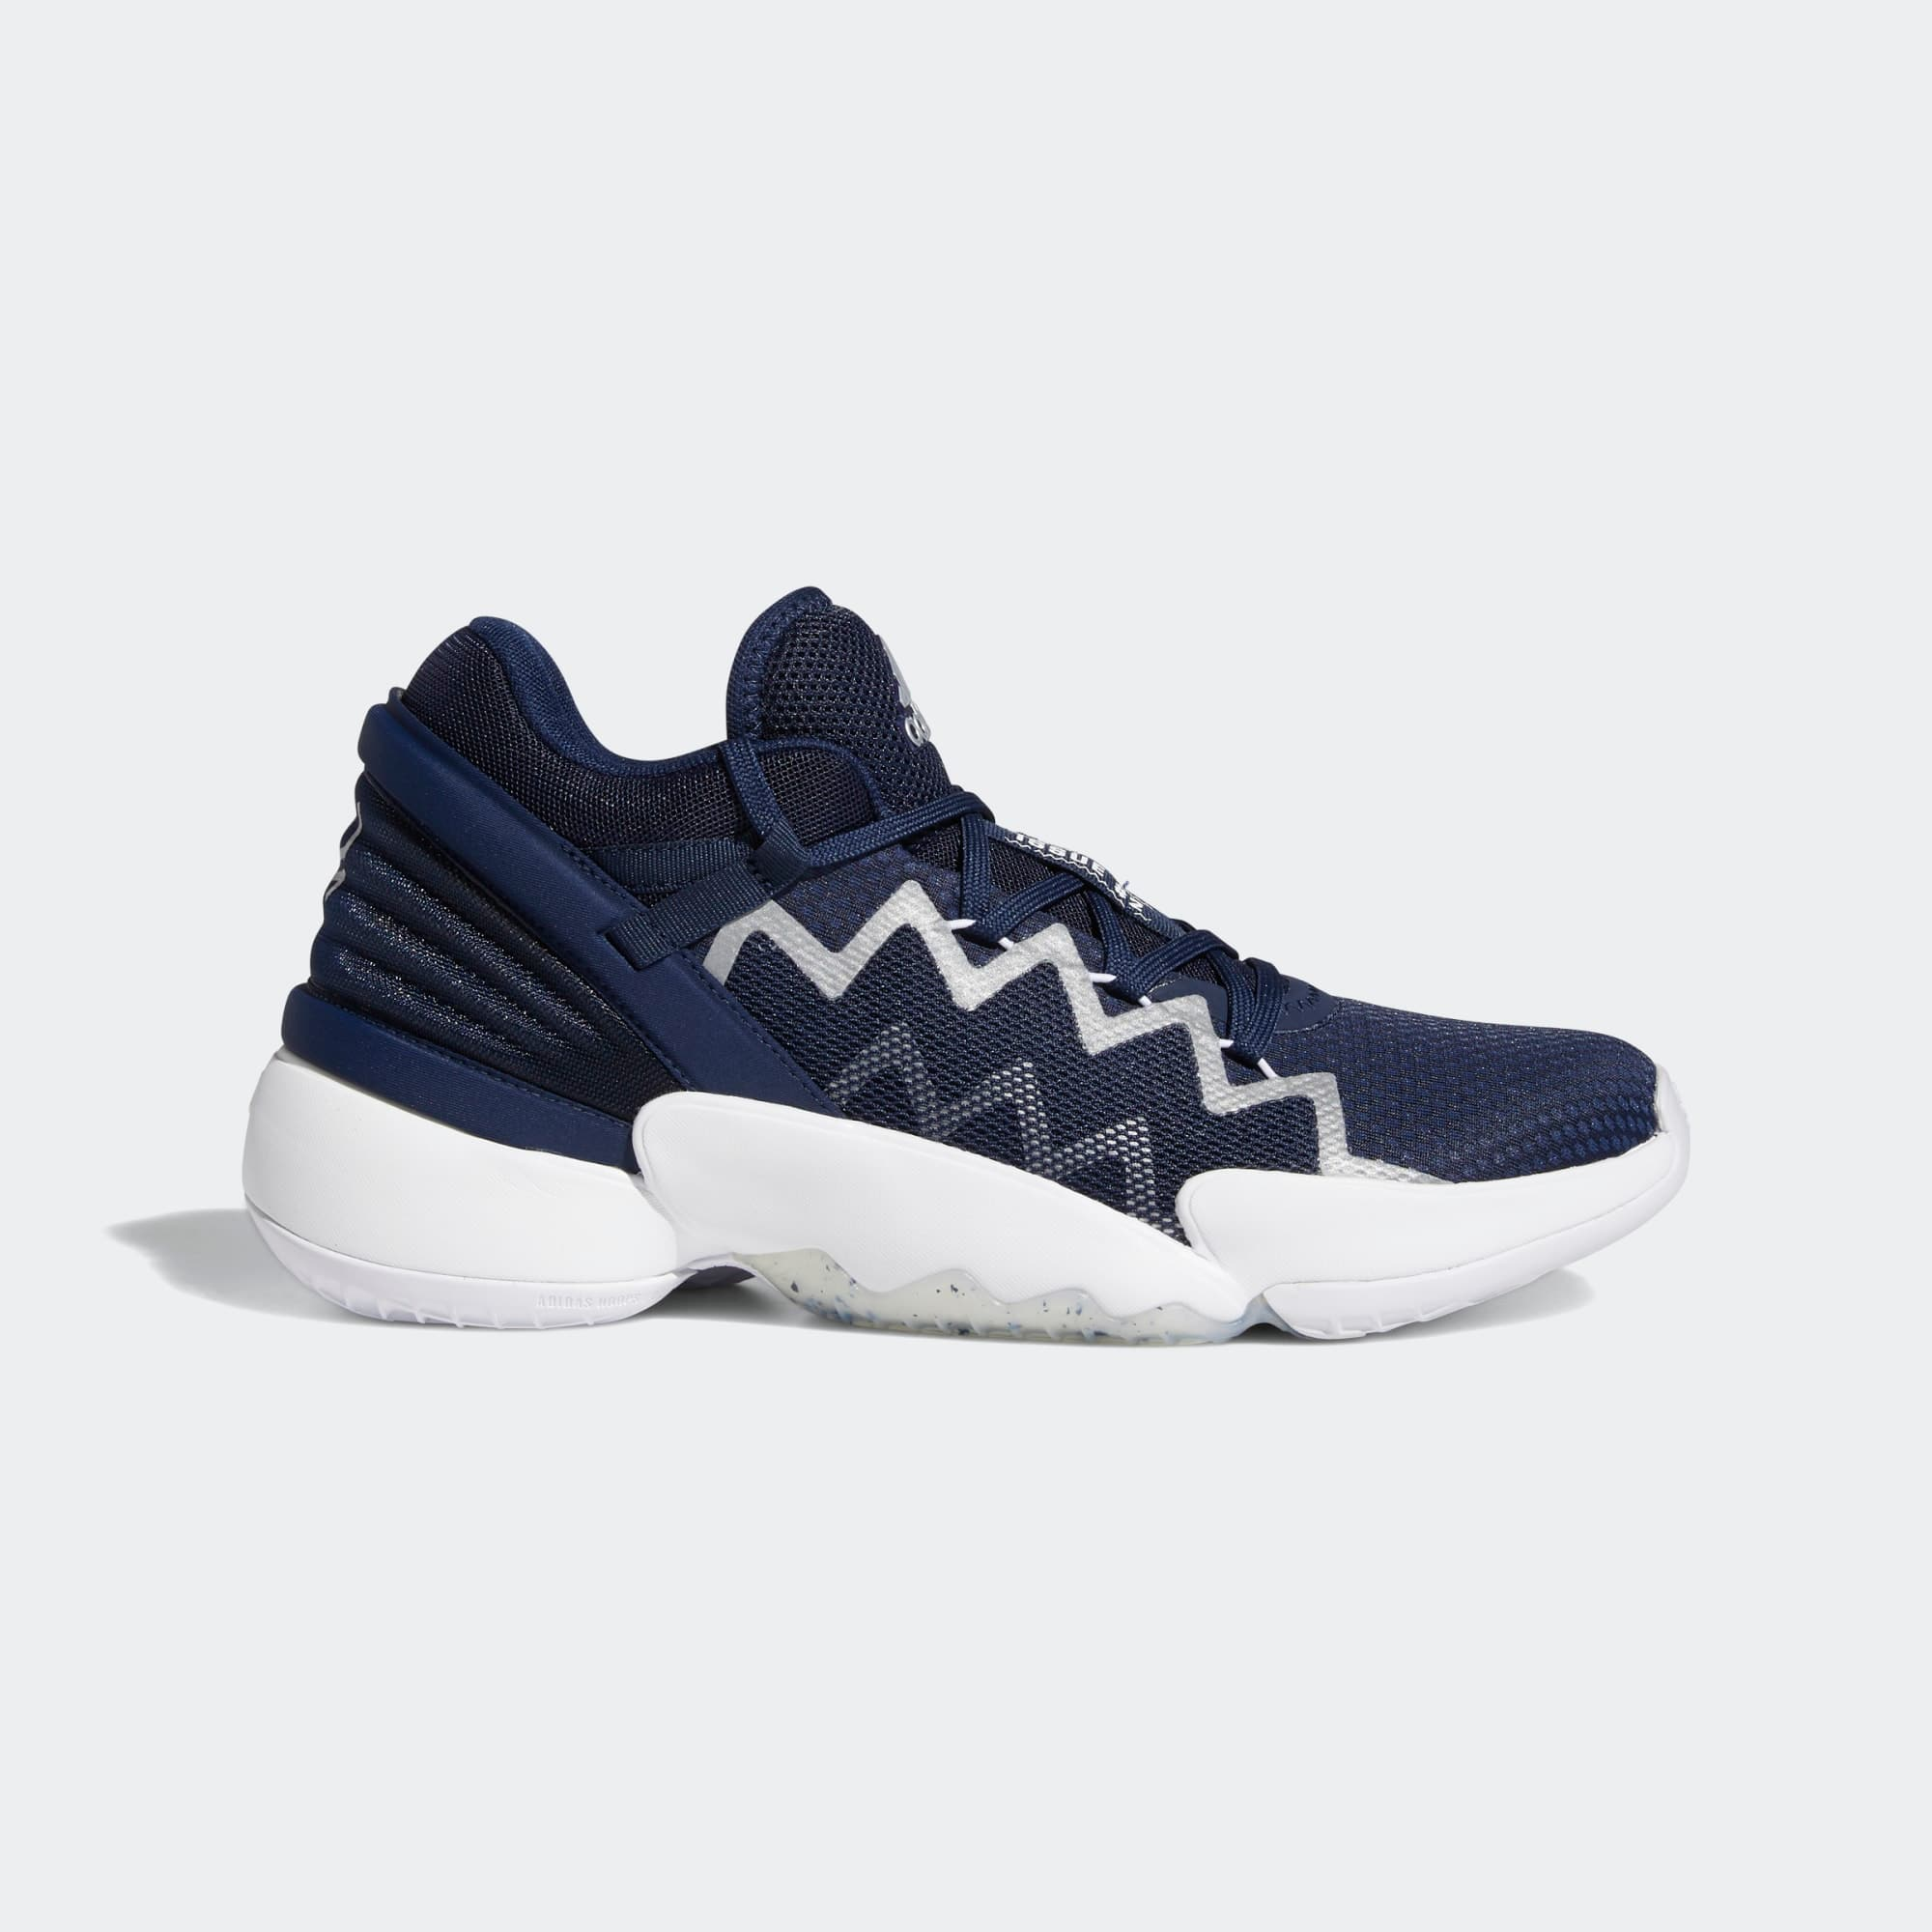 DEAL EXPIRED $56 (or $45) ADIDAS Men's DONOVAN MITCHELL D.O.N. ISSUE #2 Basketball Sneakers Shoe (15 color choices) 55% off at Official Adidas Store ( Compare to NIKE )